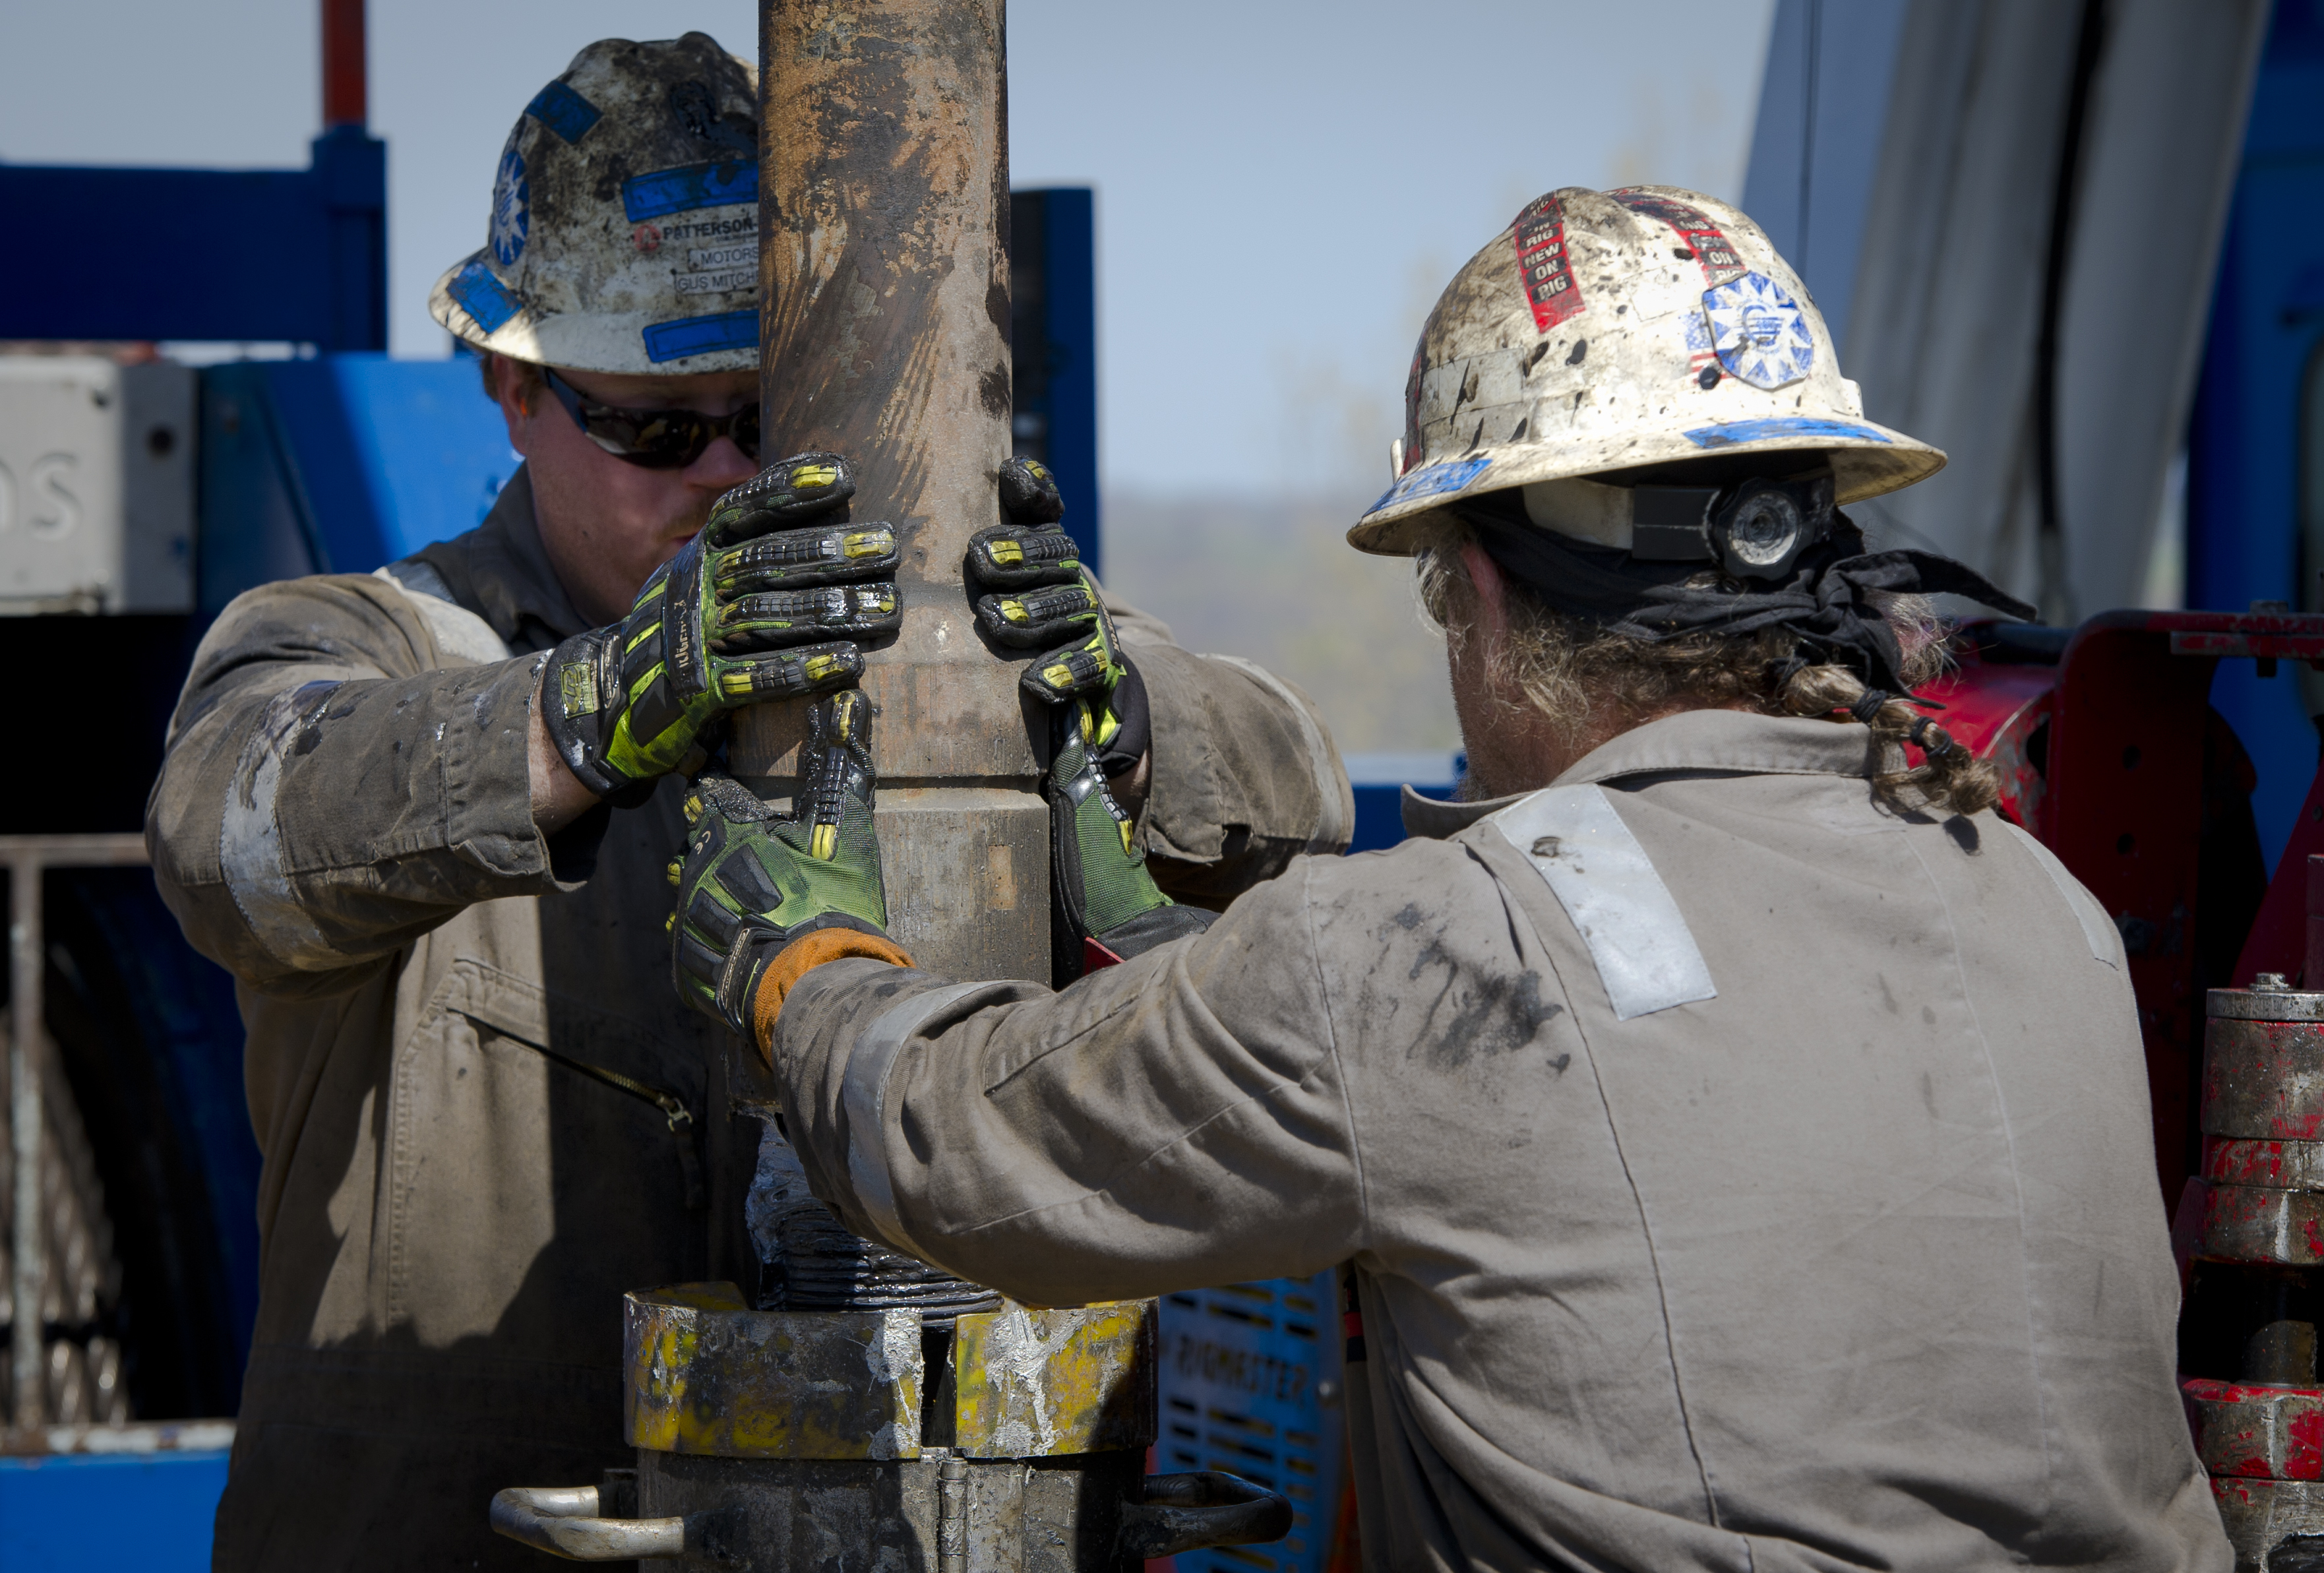 Ohio geologists link small earthquakes to fracking - CBS News